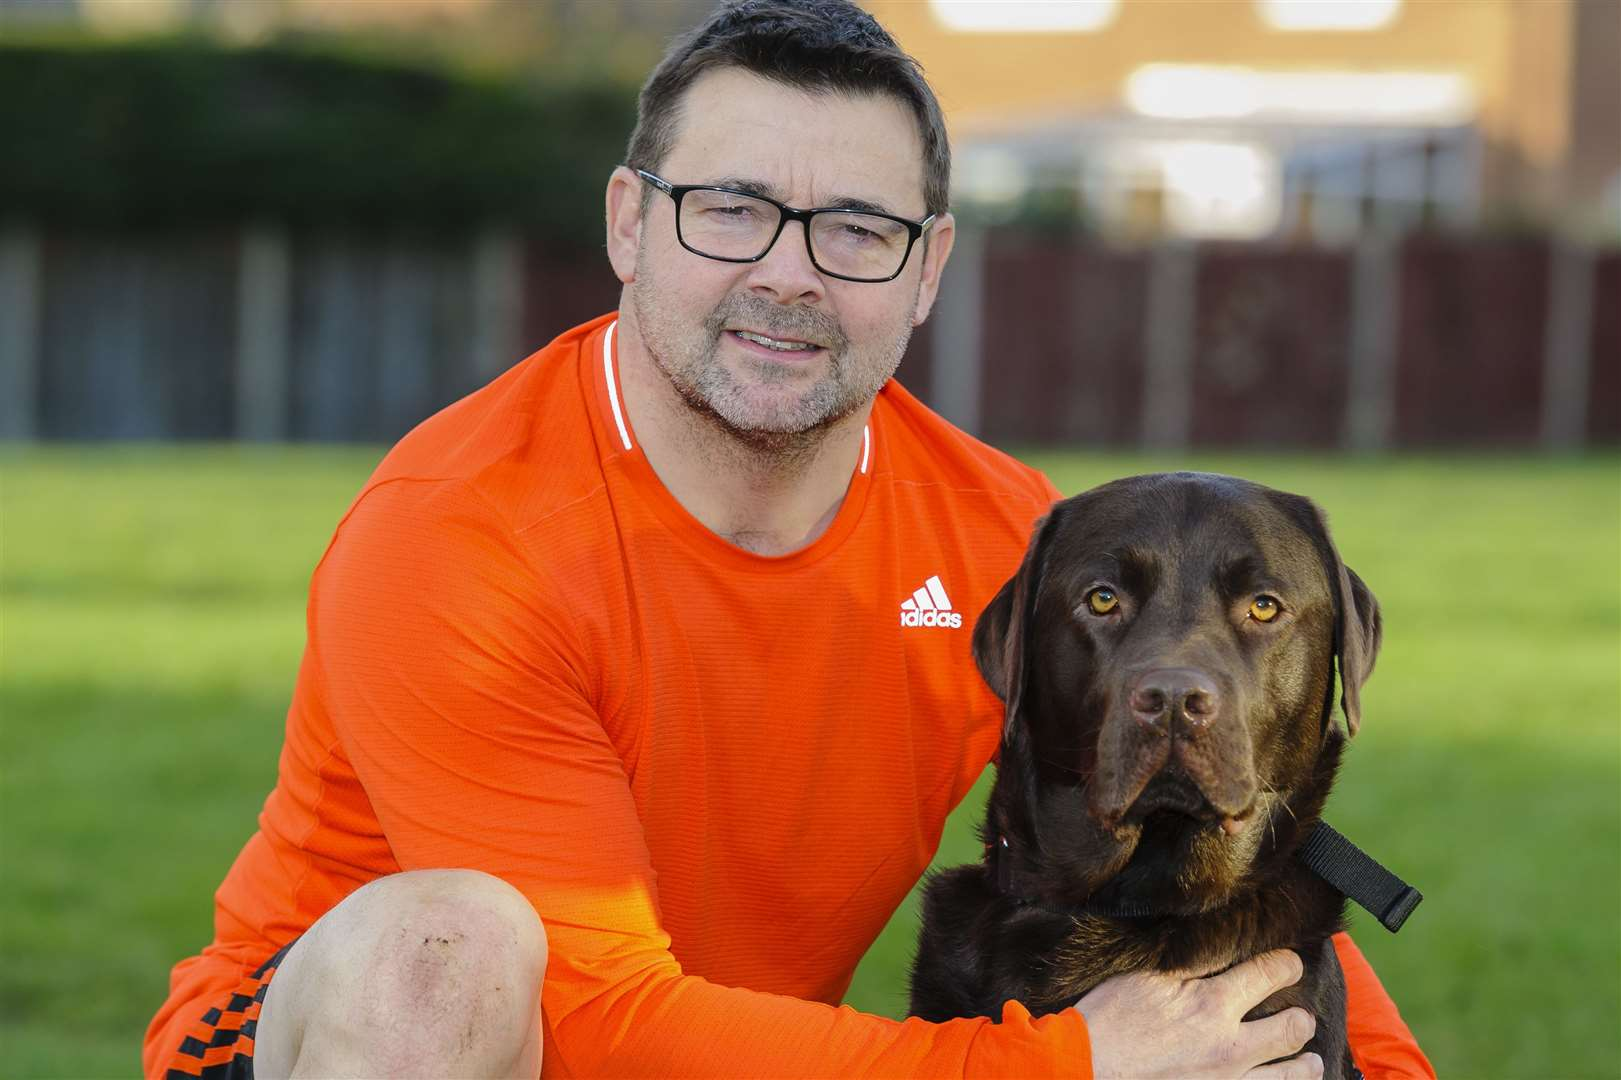 Dennis Harris of Diss took part in the London Marathon for two-year-old Jack Wright who has a rare genetic disorder. He's pictured with his dog Douglas. Picture by Mark Bullimore Photography.